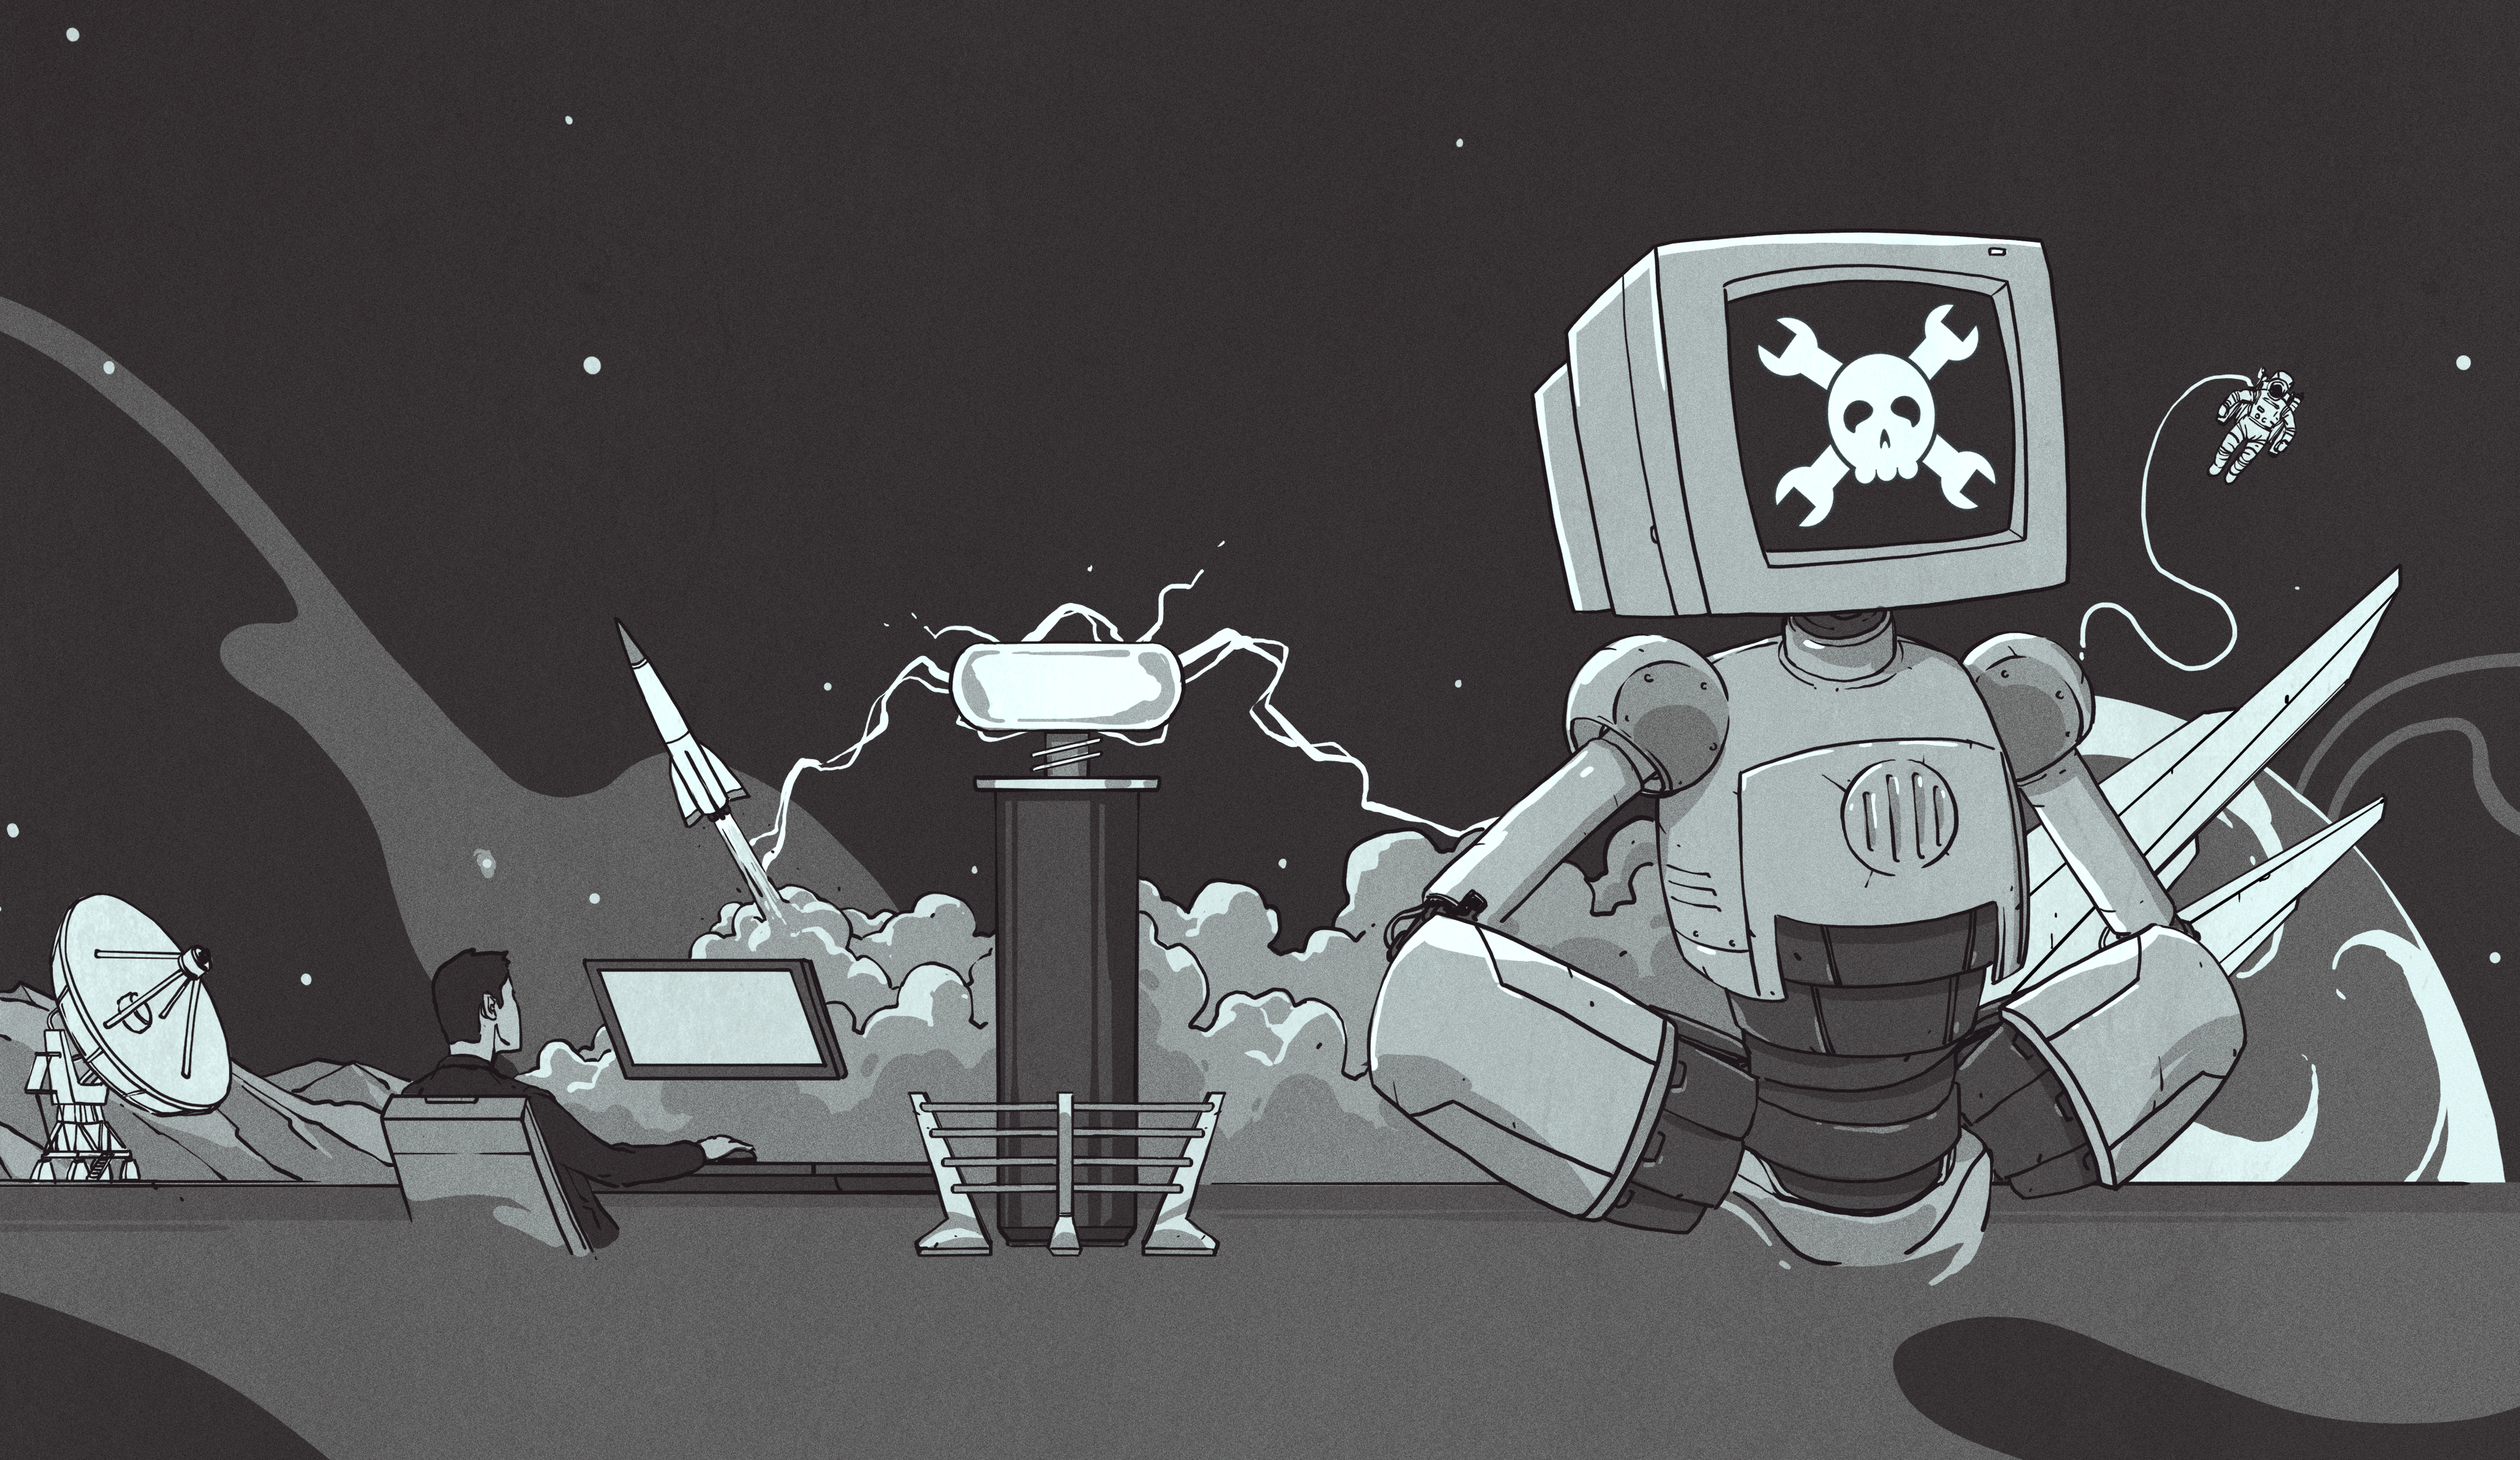 Hackaday Celebrates 15 Years and Oh How the Hardware Has Changed